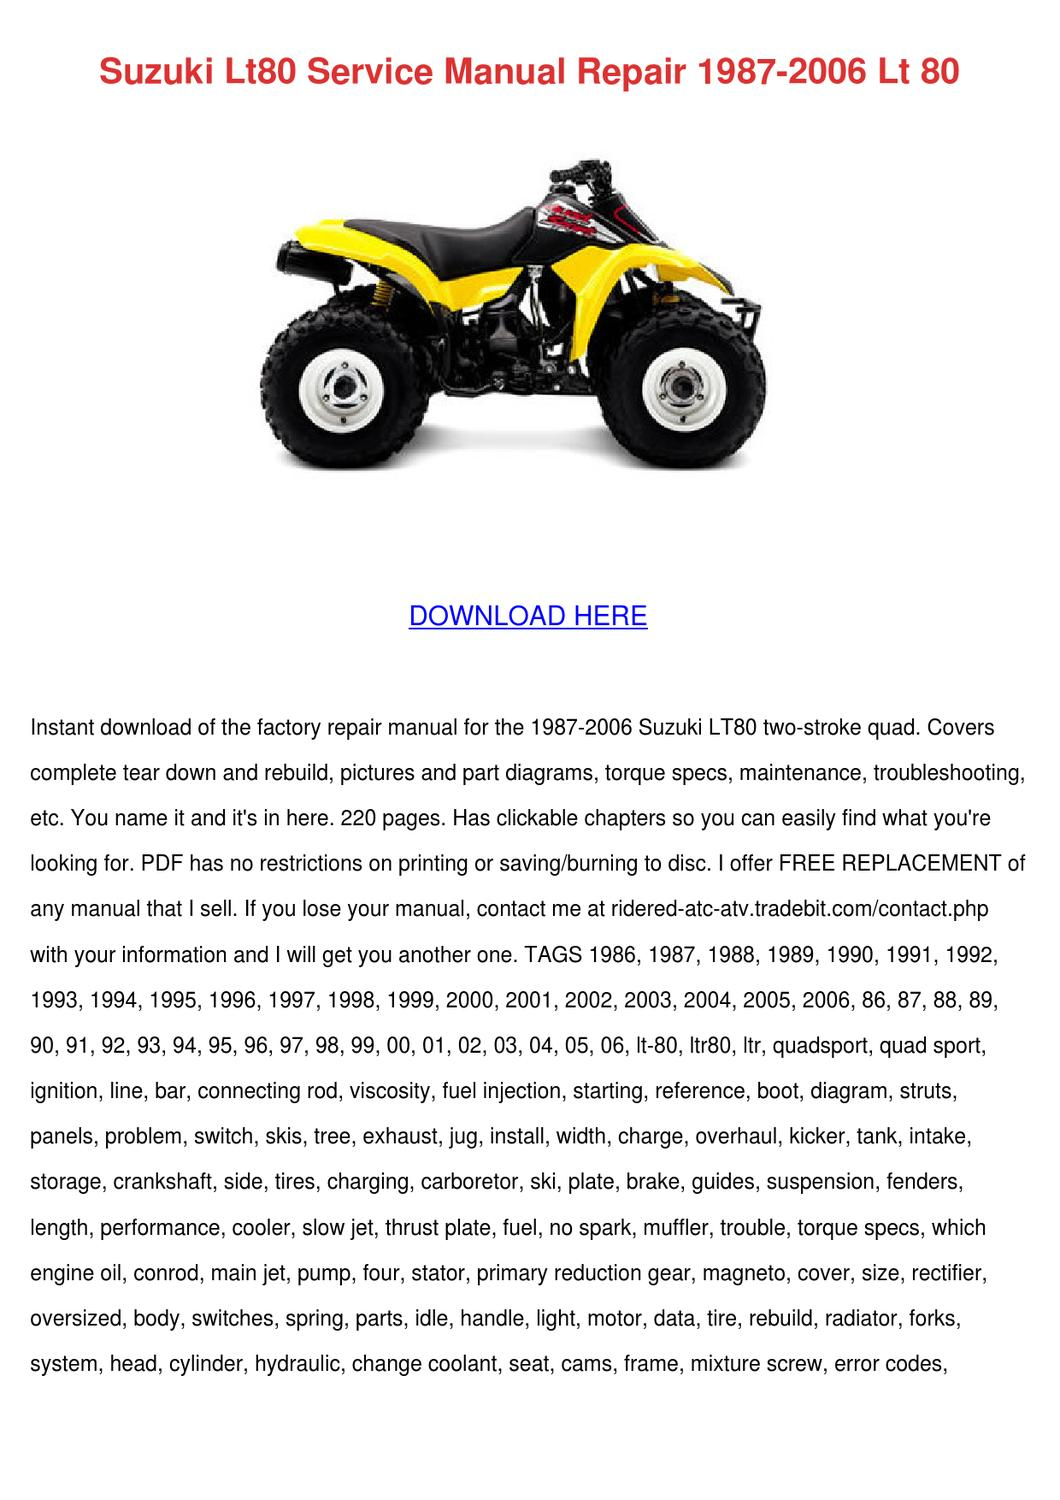 Suzuki Lt80 Service Manual Repair 1987 2006 L By Ona Wax Issuu